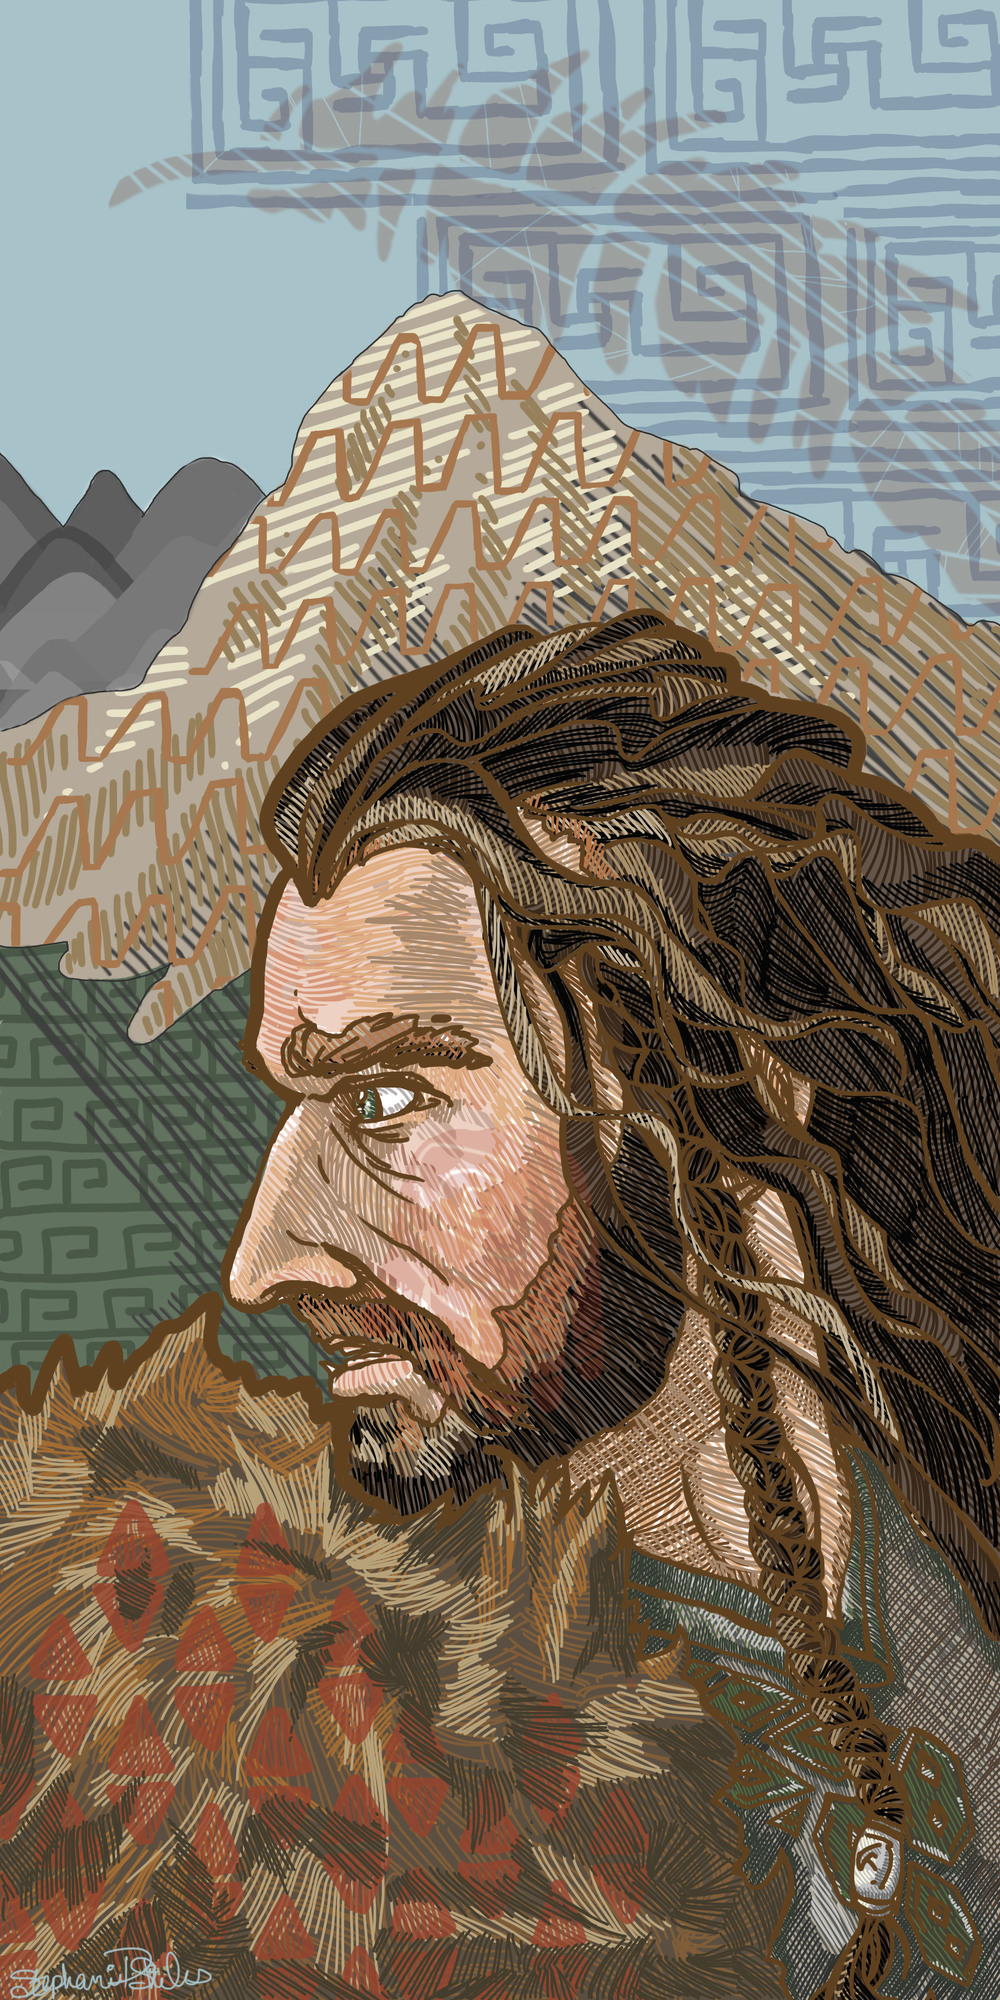 Misty Mountain Digital Illustration